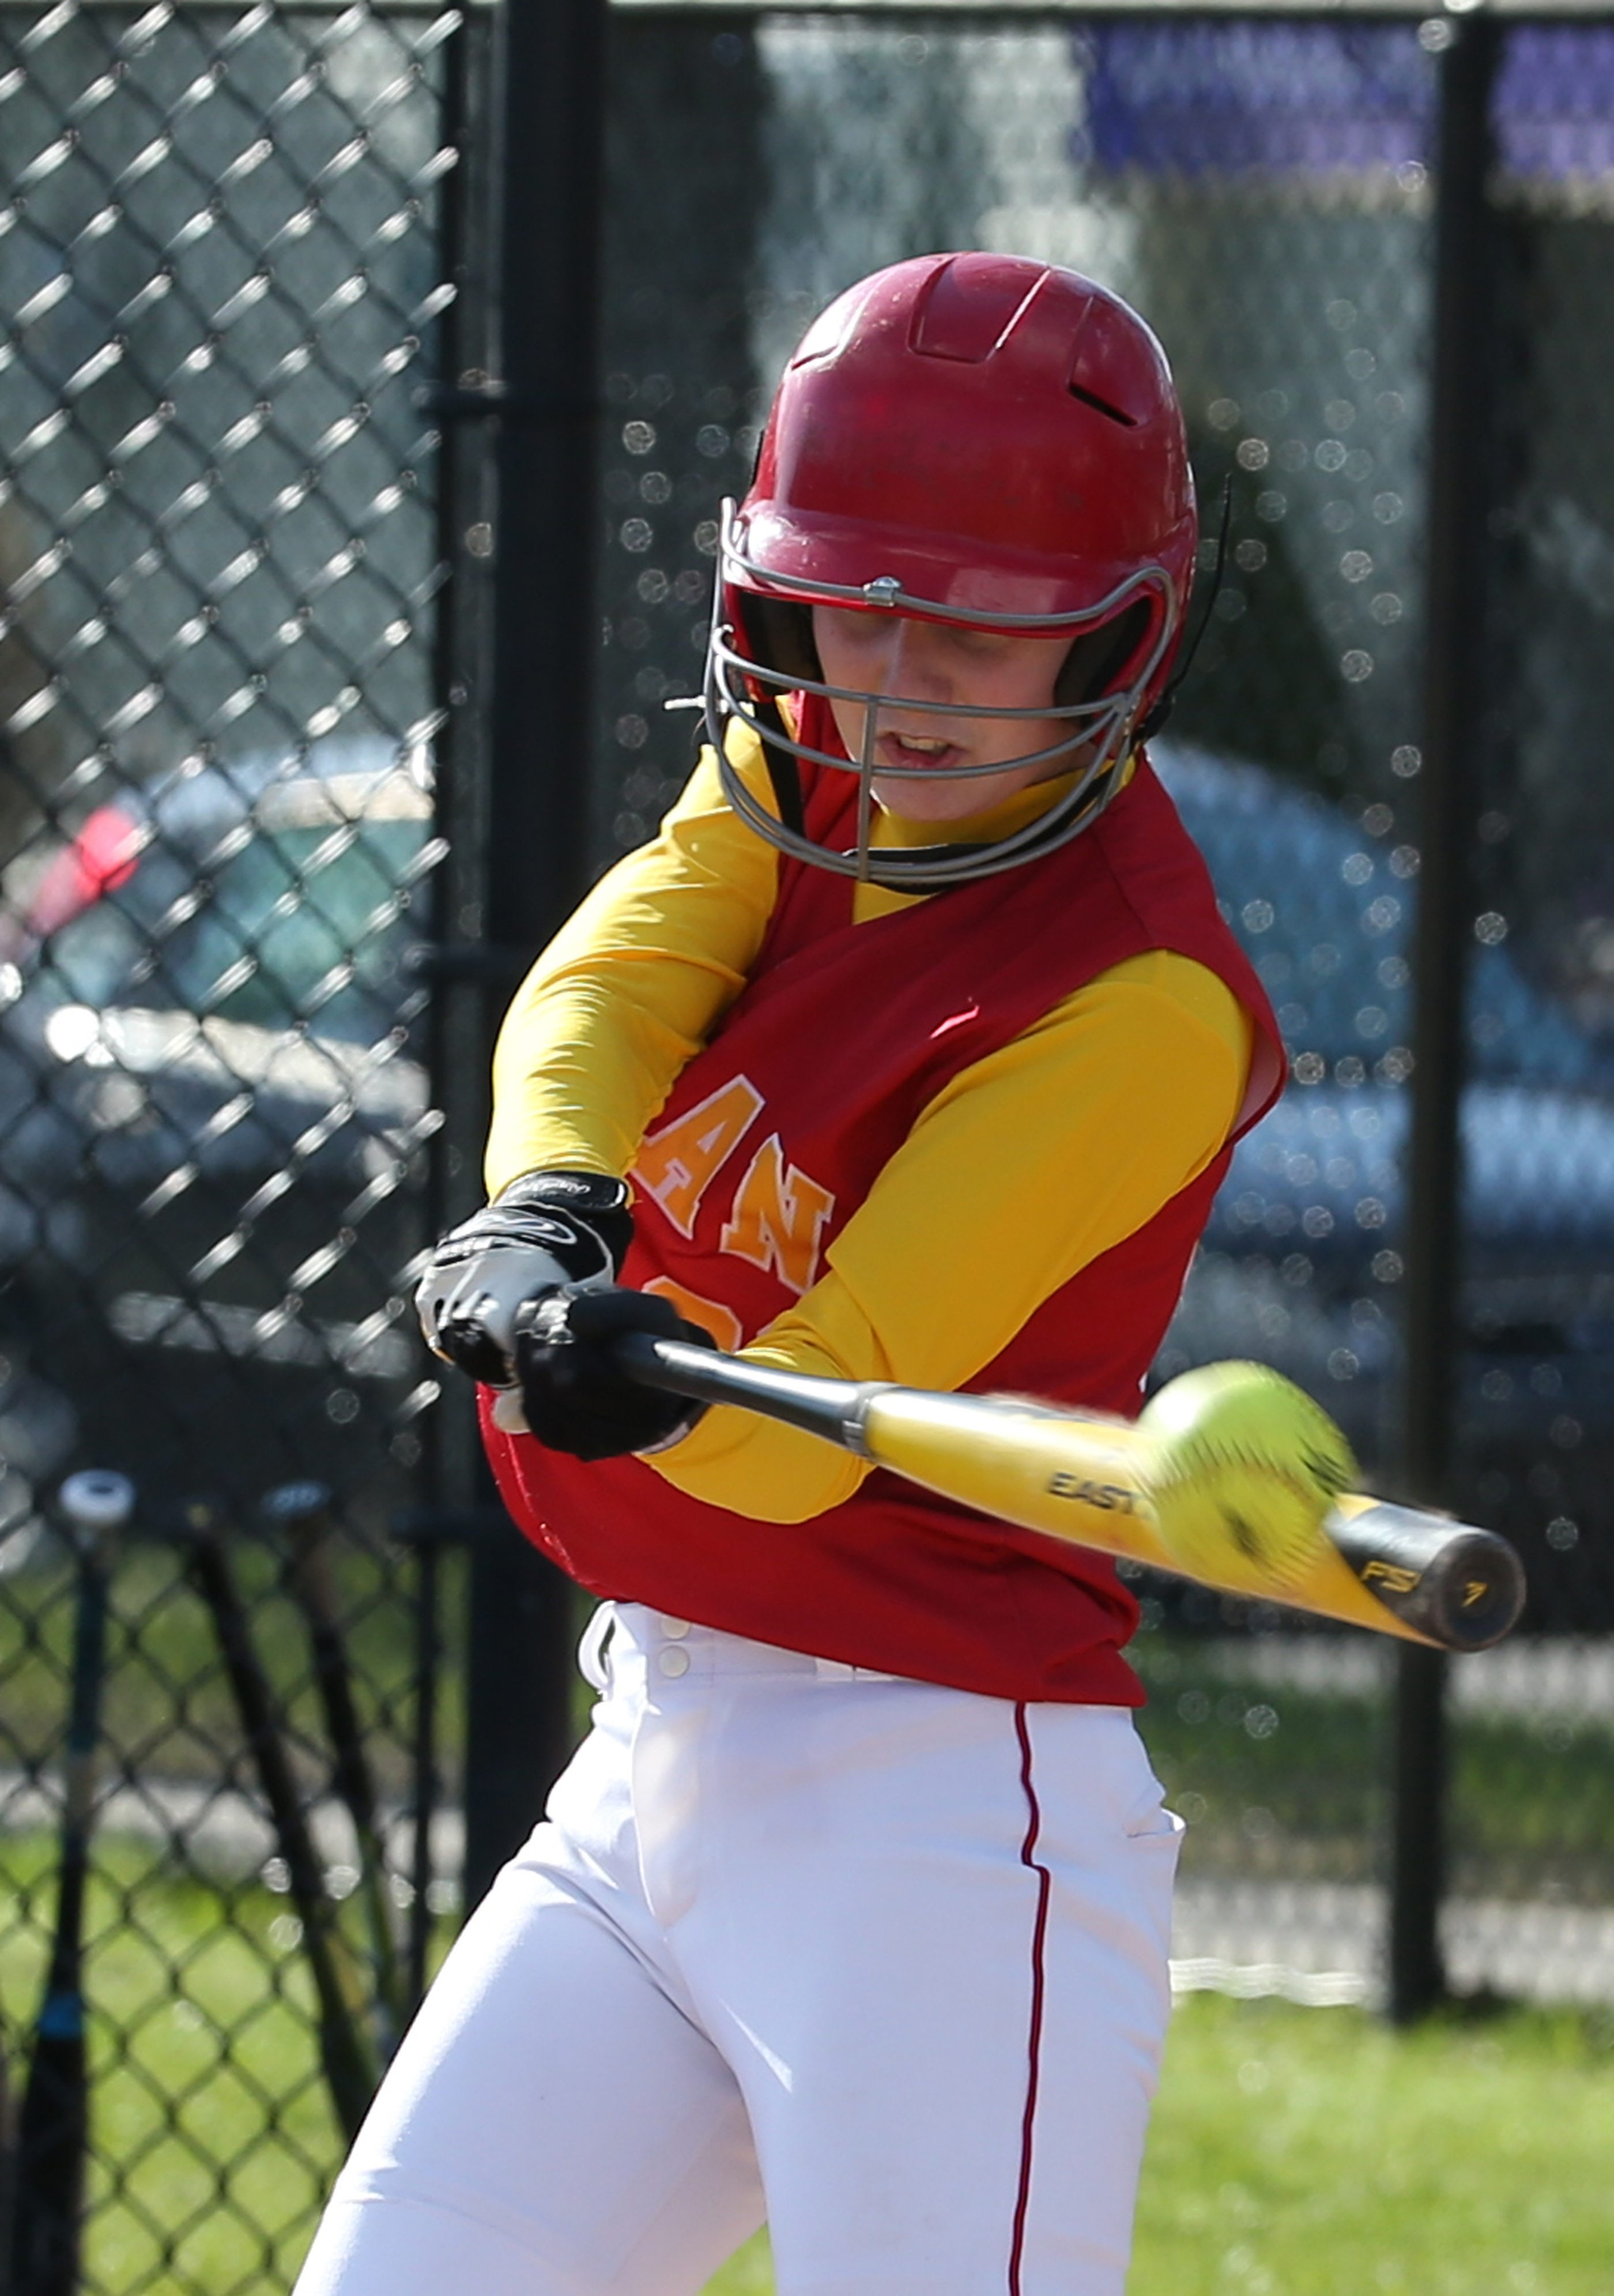 Olean's Miranda Sakala connects on a double in the fourth inning against visiting Cassadaga Valley.